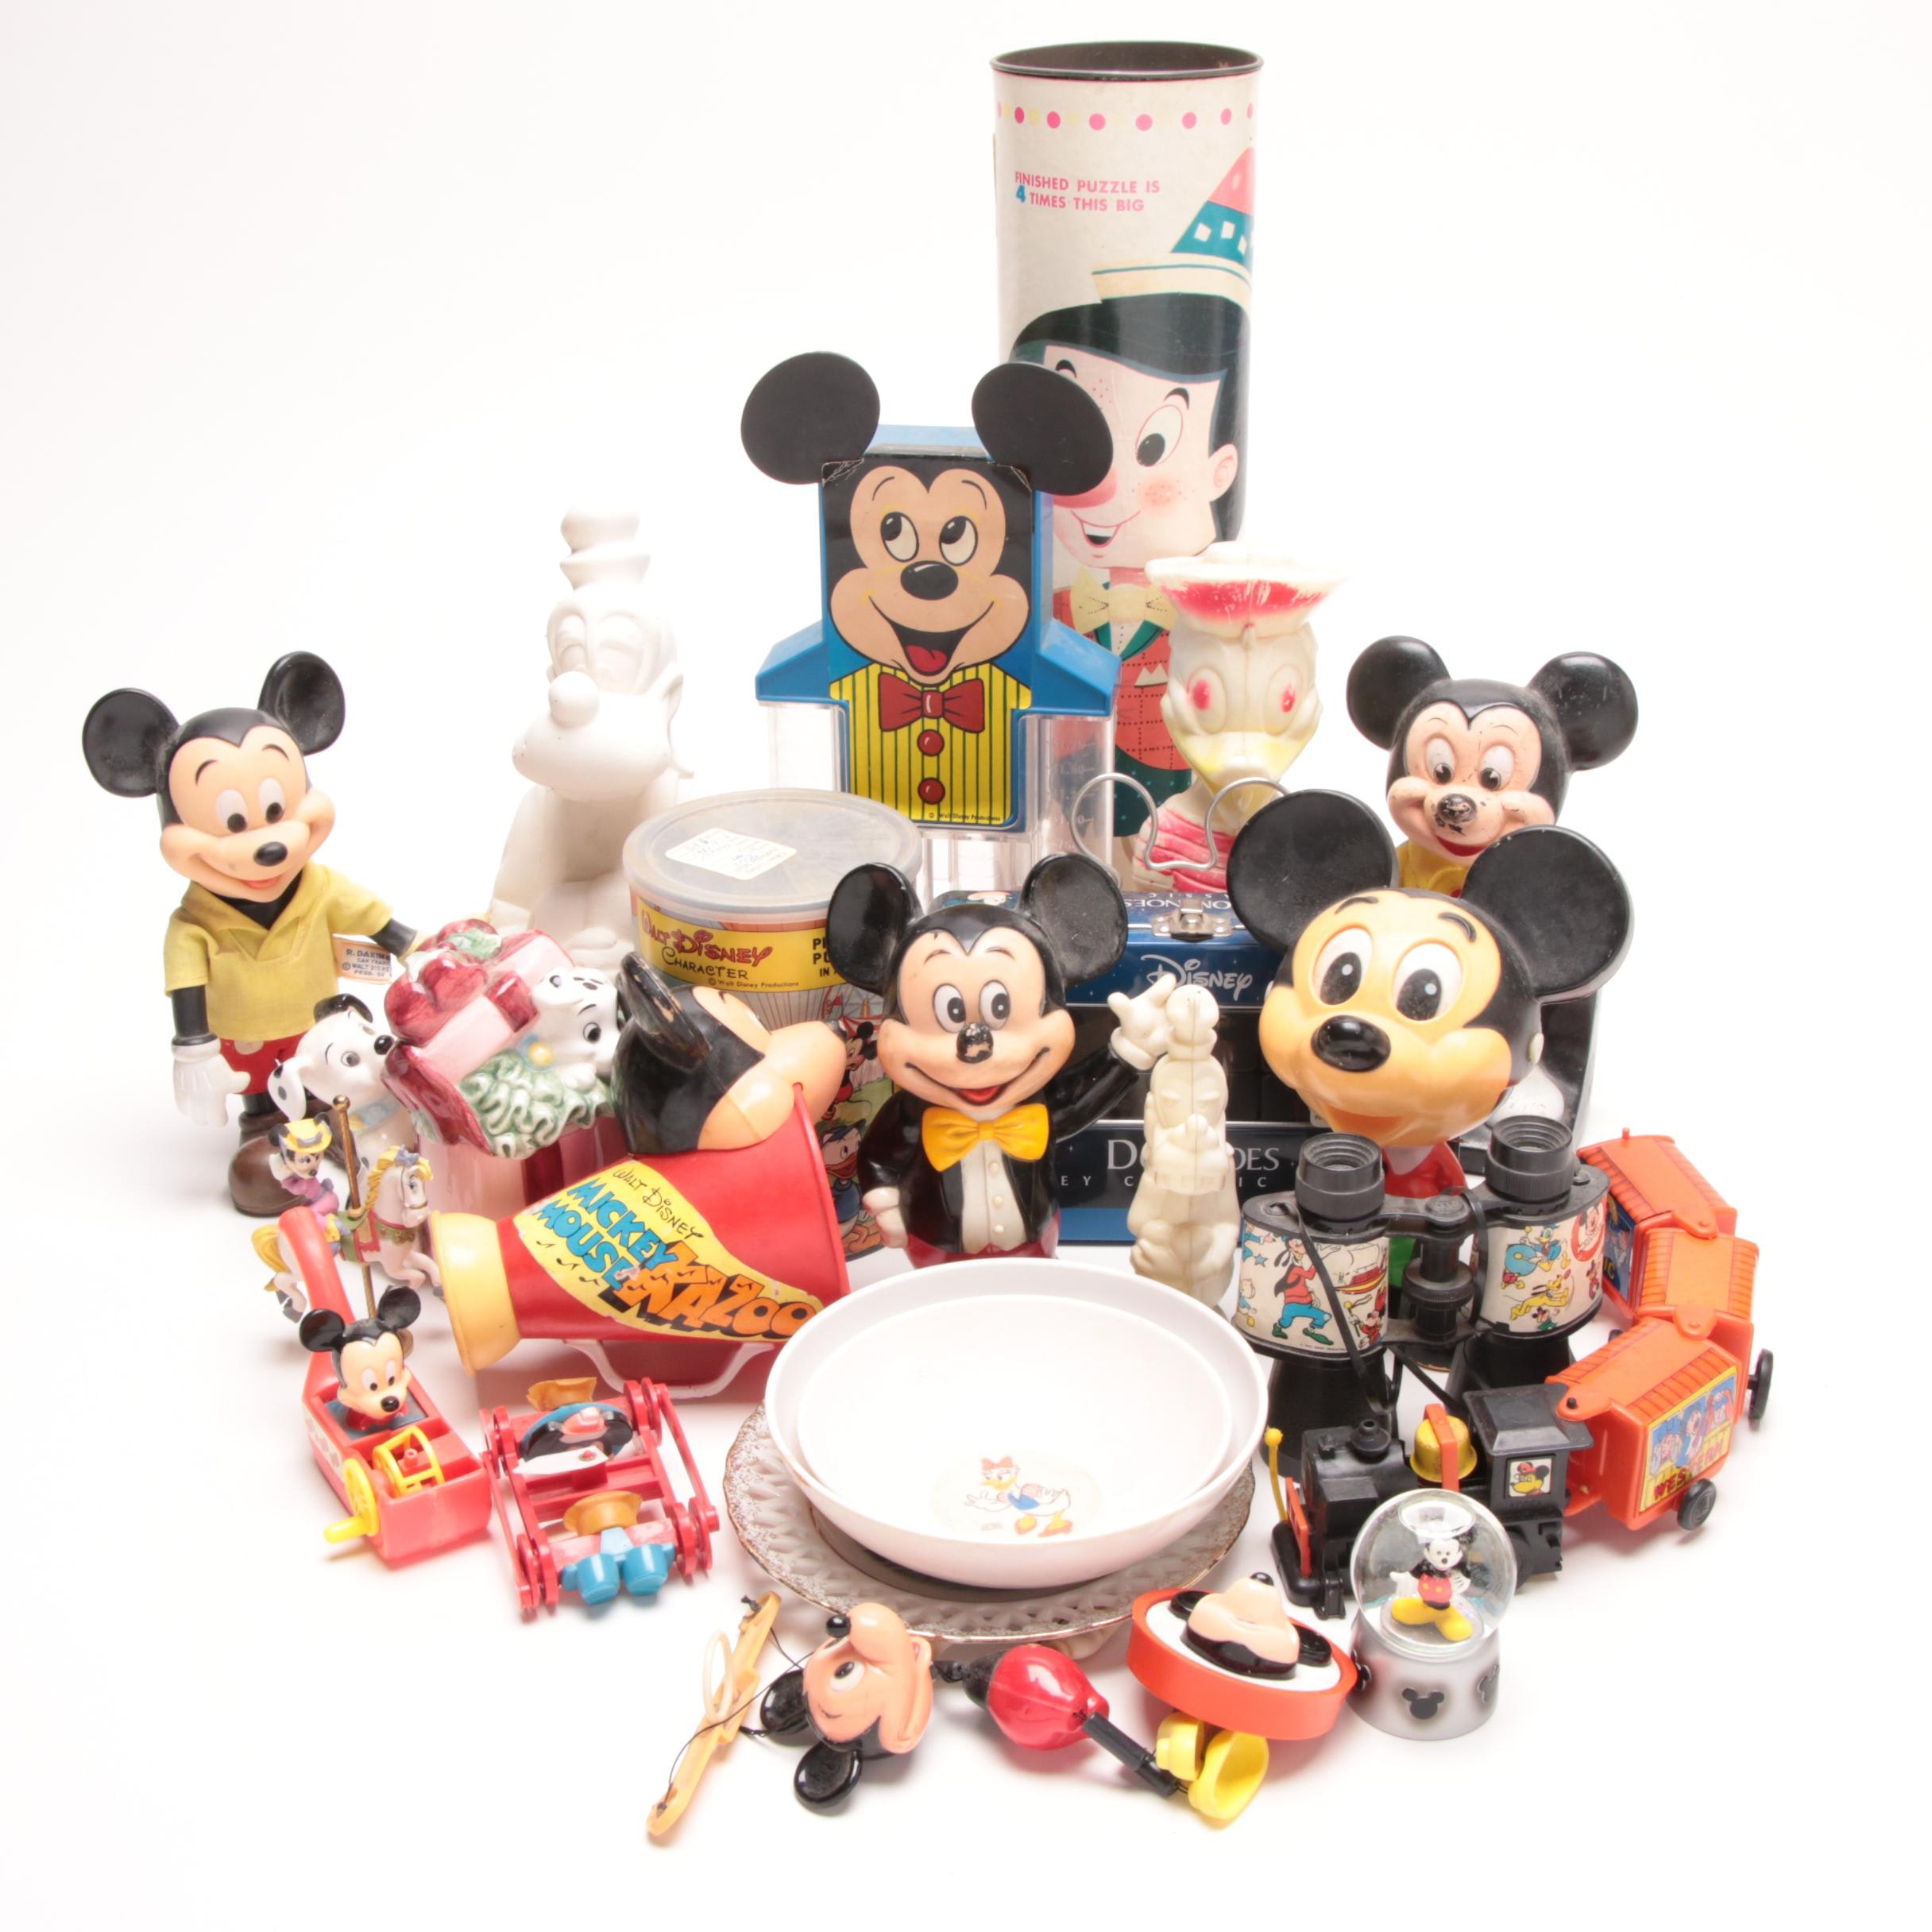 Mickey Mouse and Walt Disney Themed Toys and Collectibles